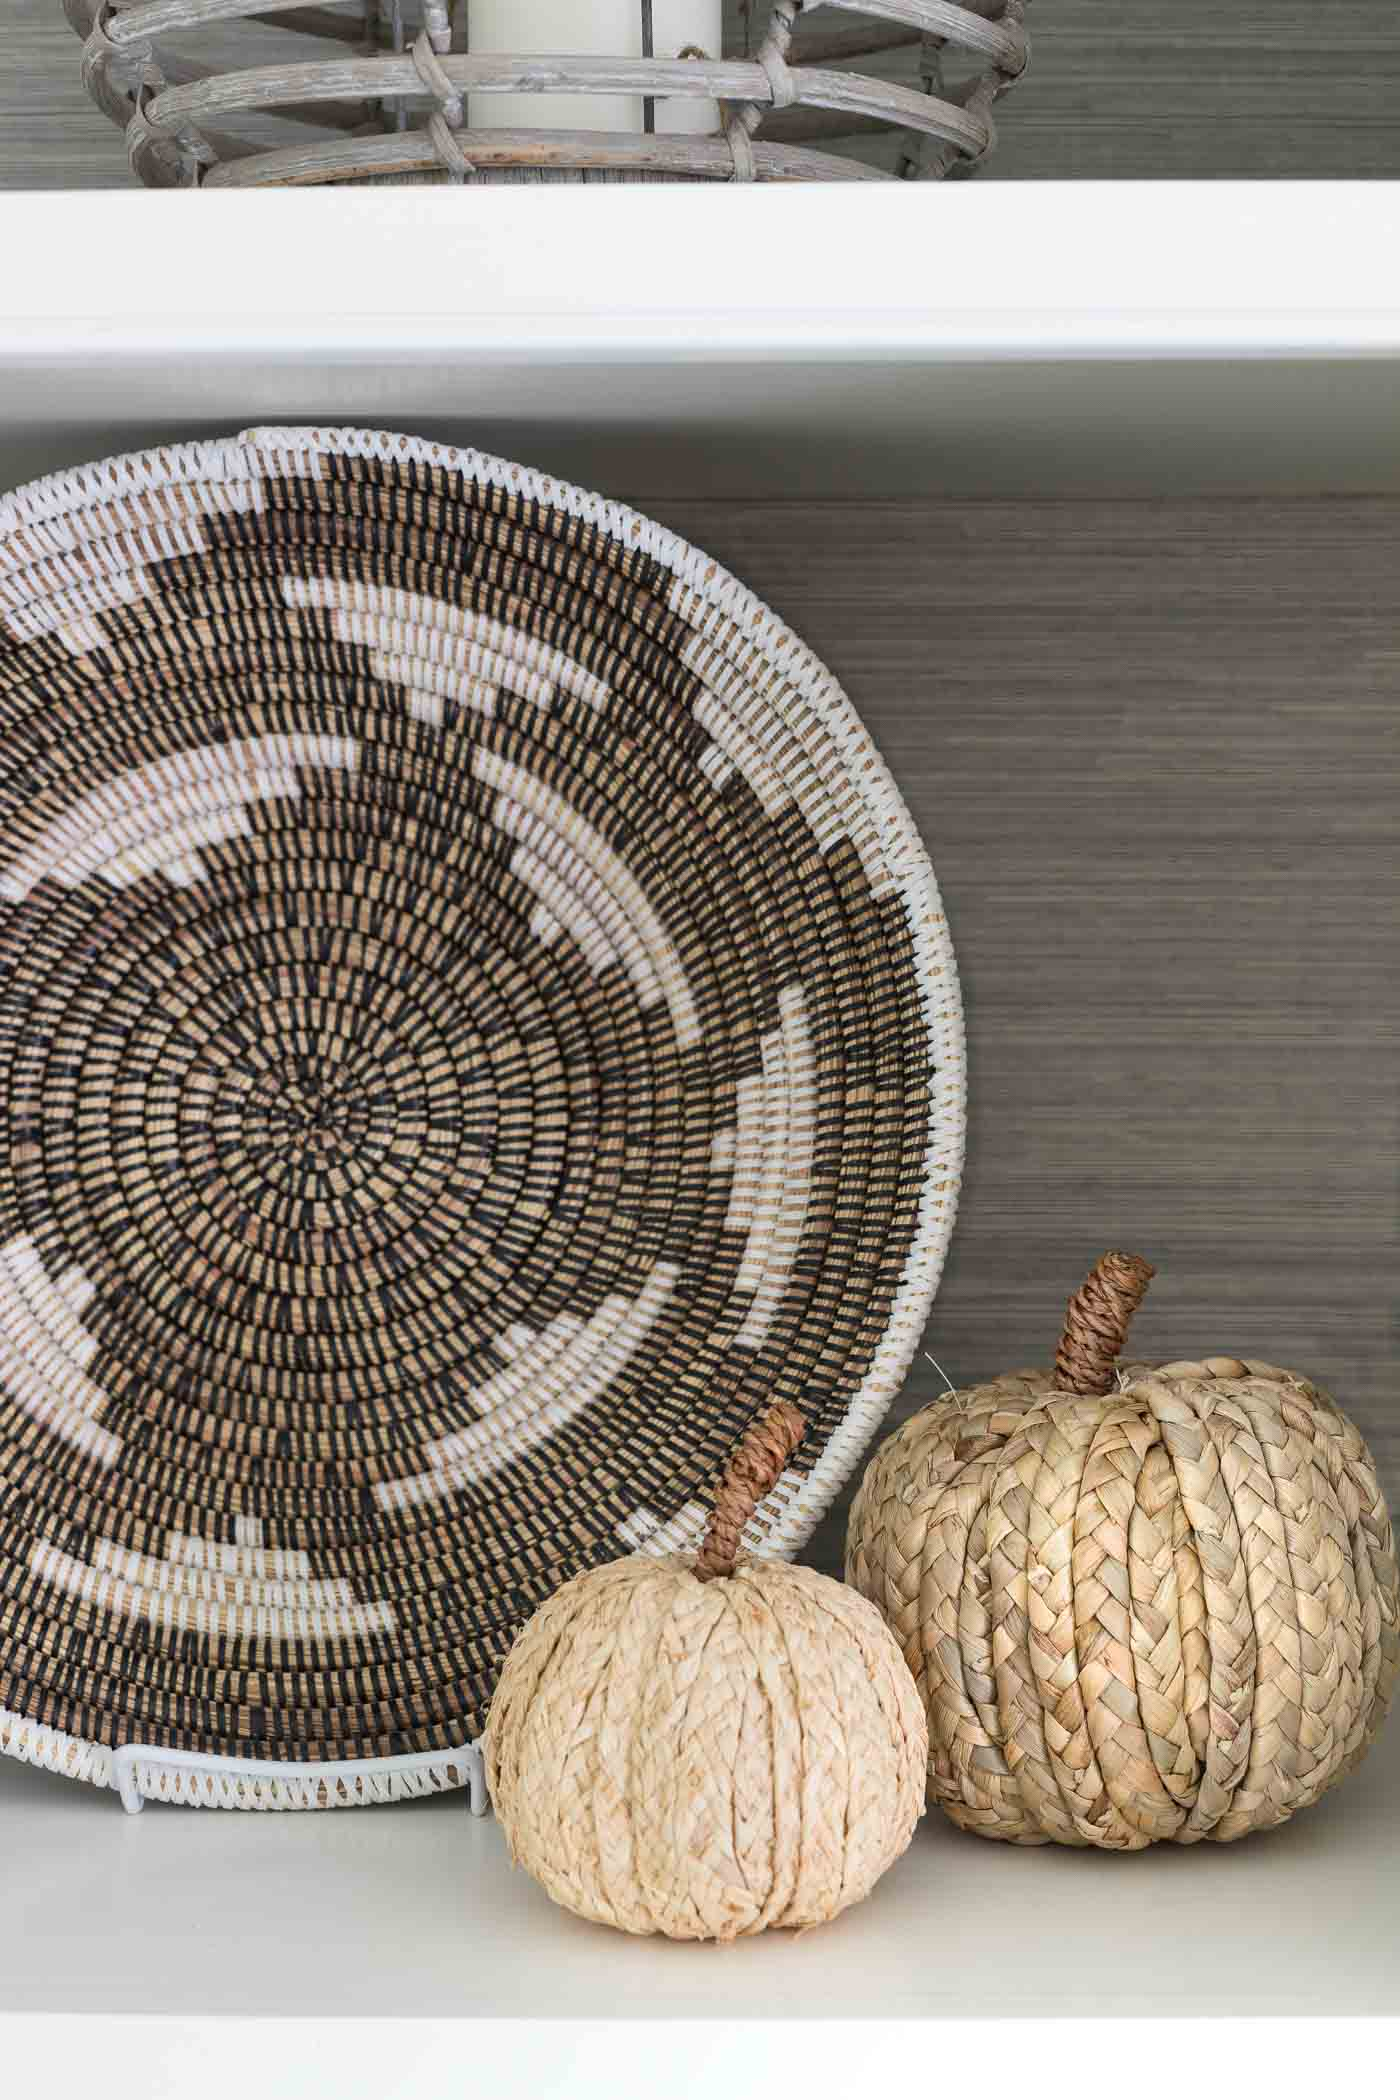 Cute woven pumpkins make the perfect fall decor for shelves and bookcases!